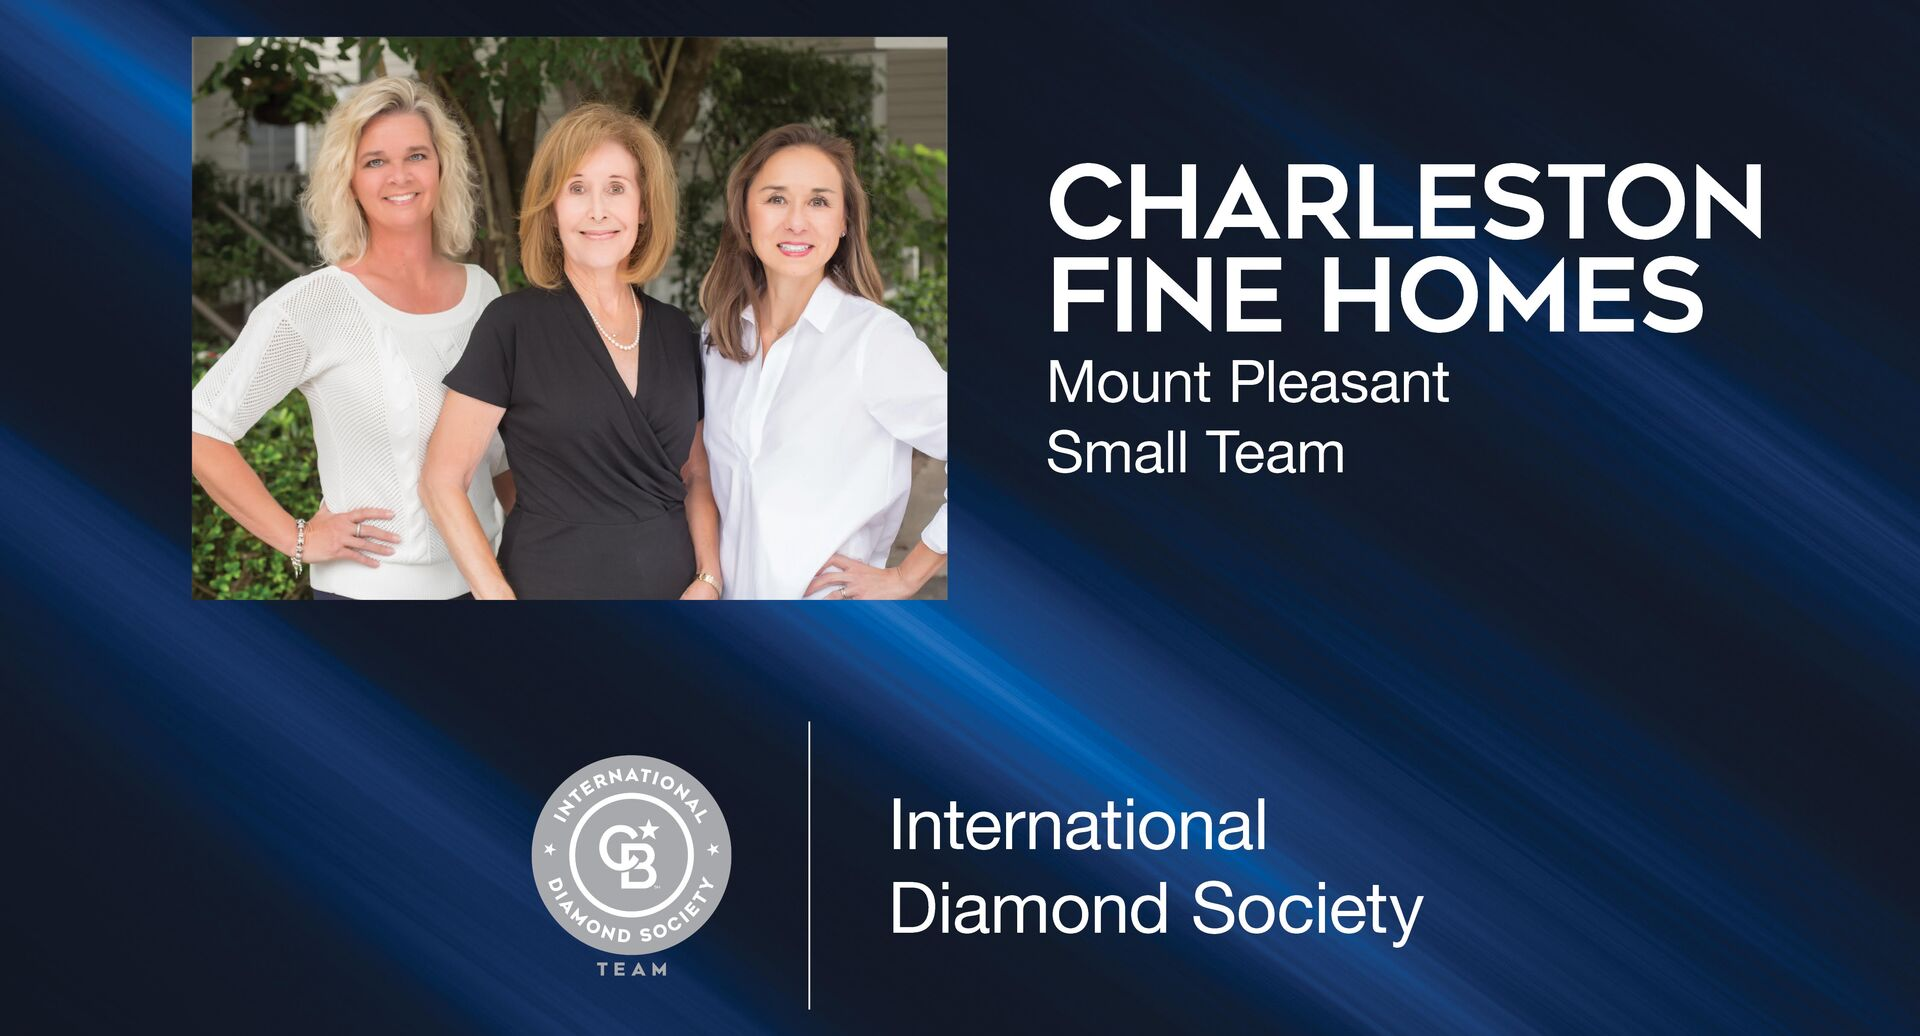 Coldwell Banker International Diamond Society